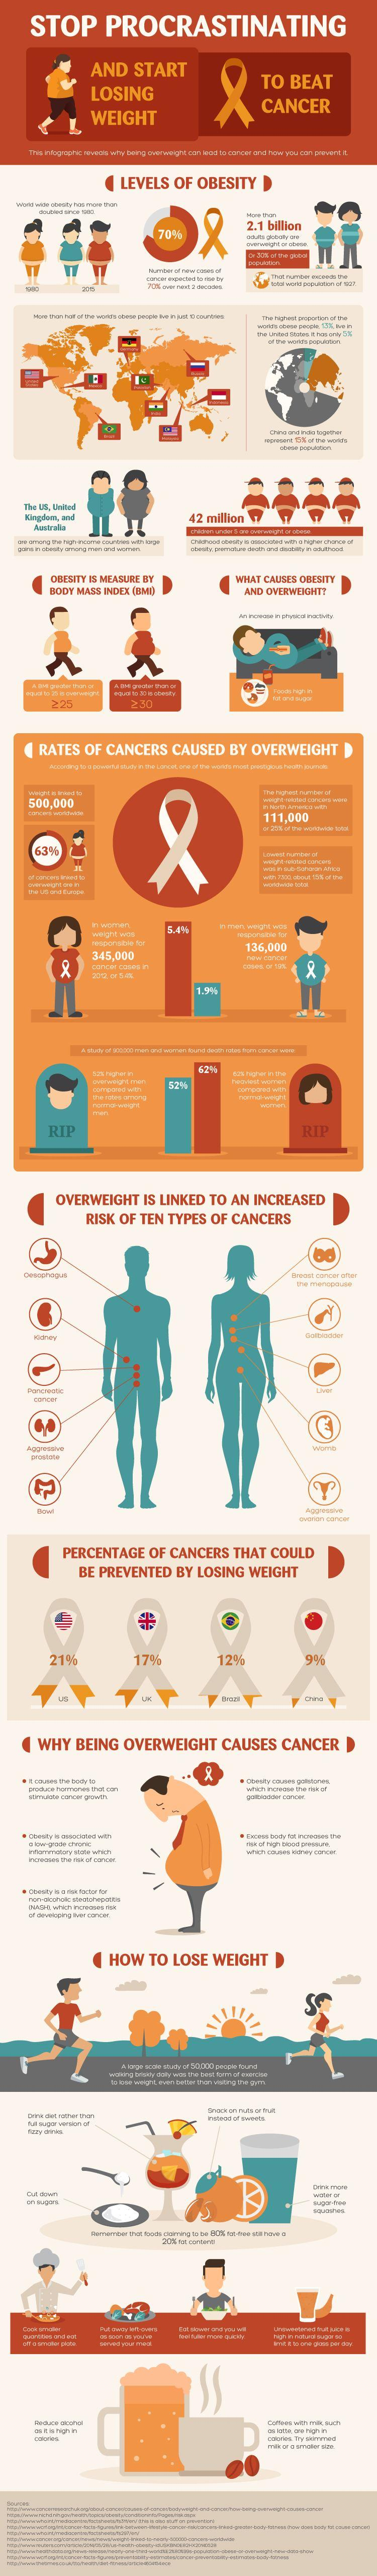 Record numbers of people are now overweight or obese. Research has shown that being overweight can be a significant cause of cancer. Losing weight will not only make you look and feel better, it can also help you to prevent cancer, one of the leading causes of death in the world today.